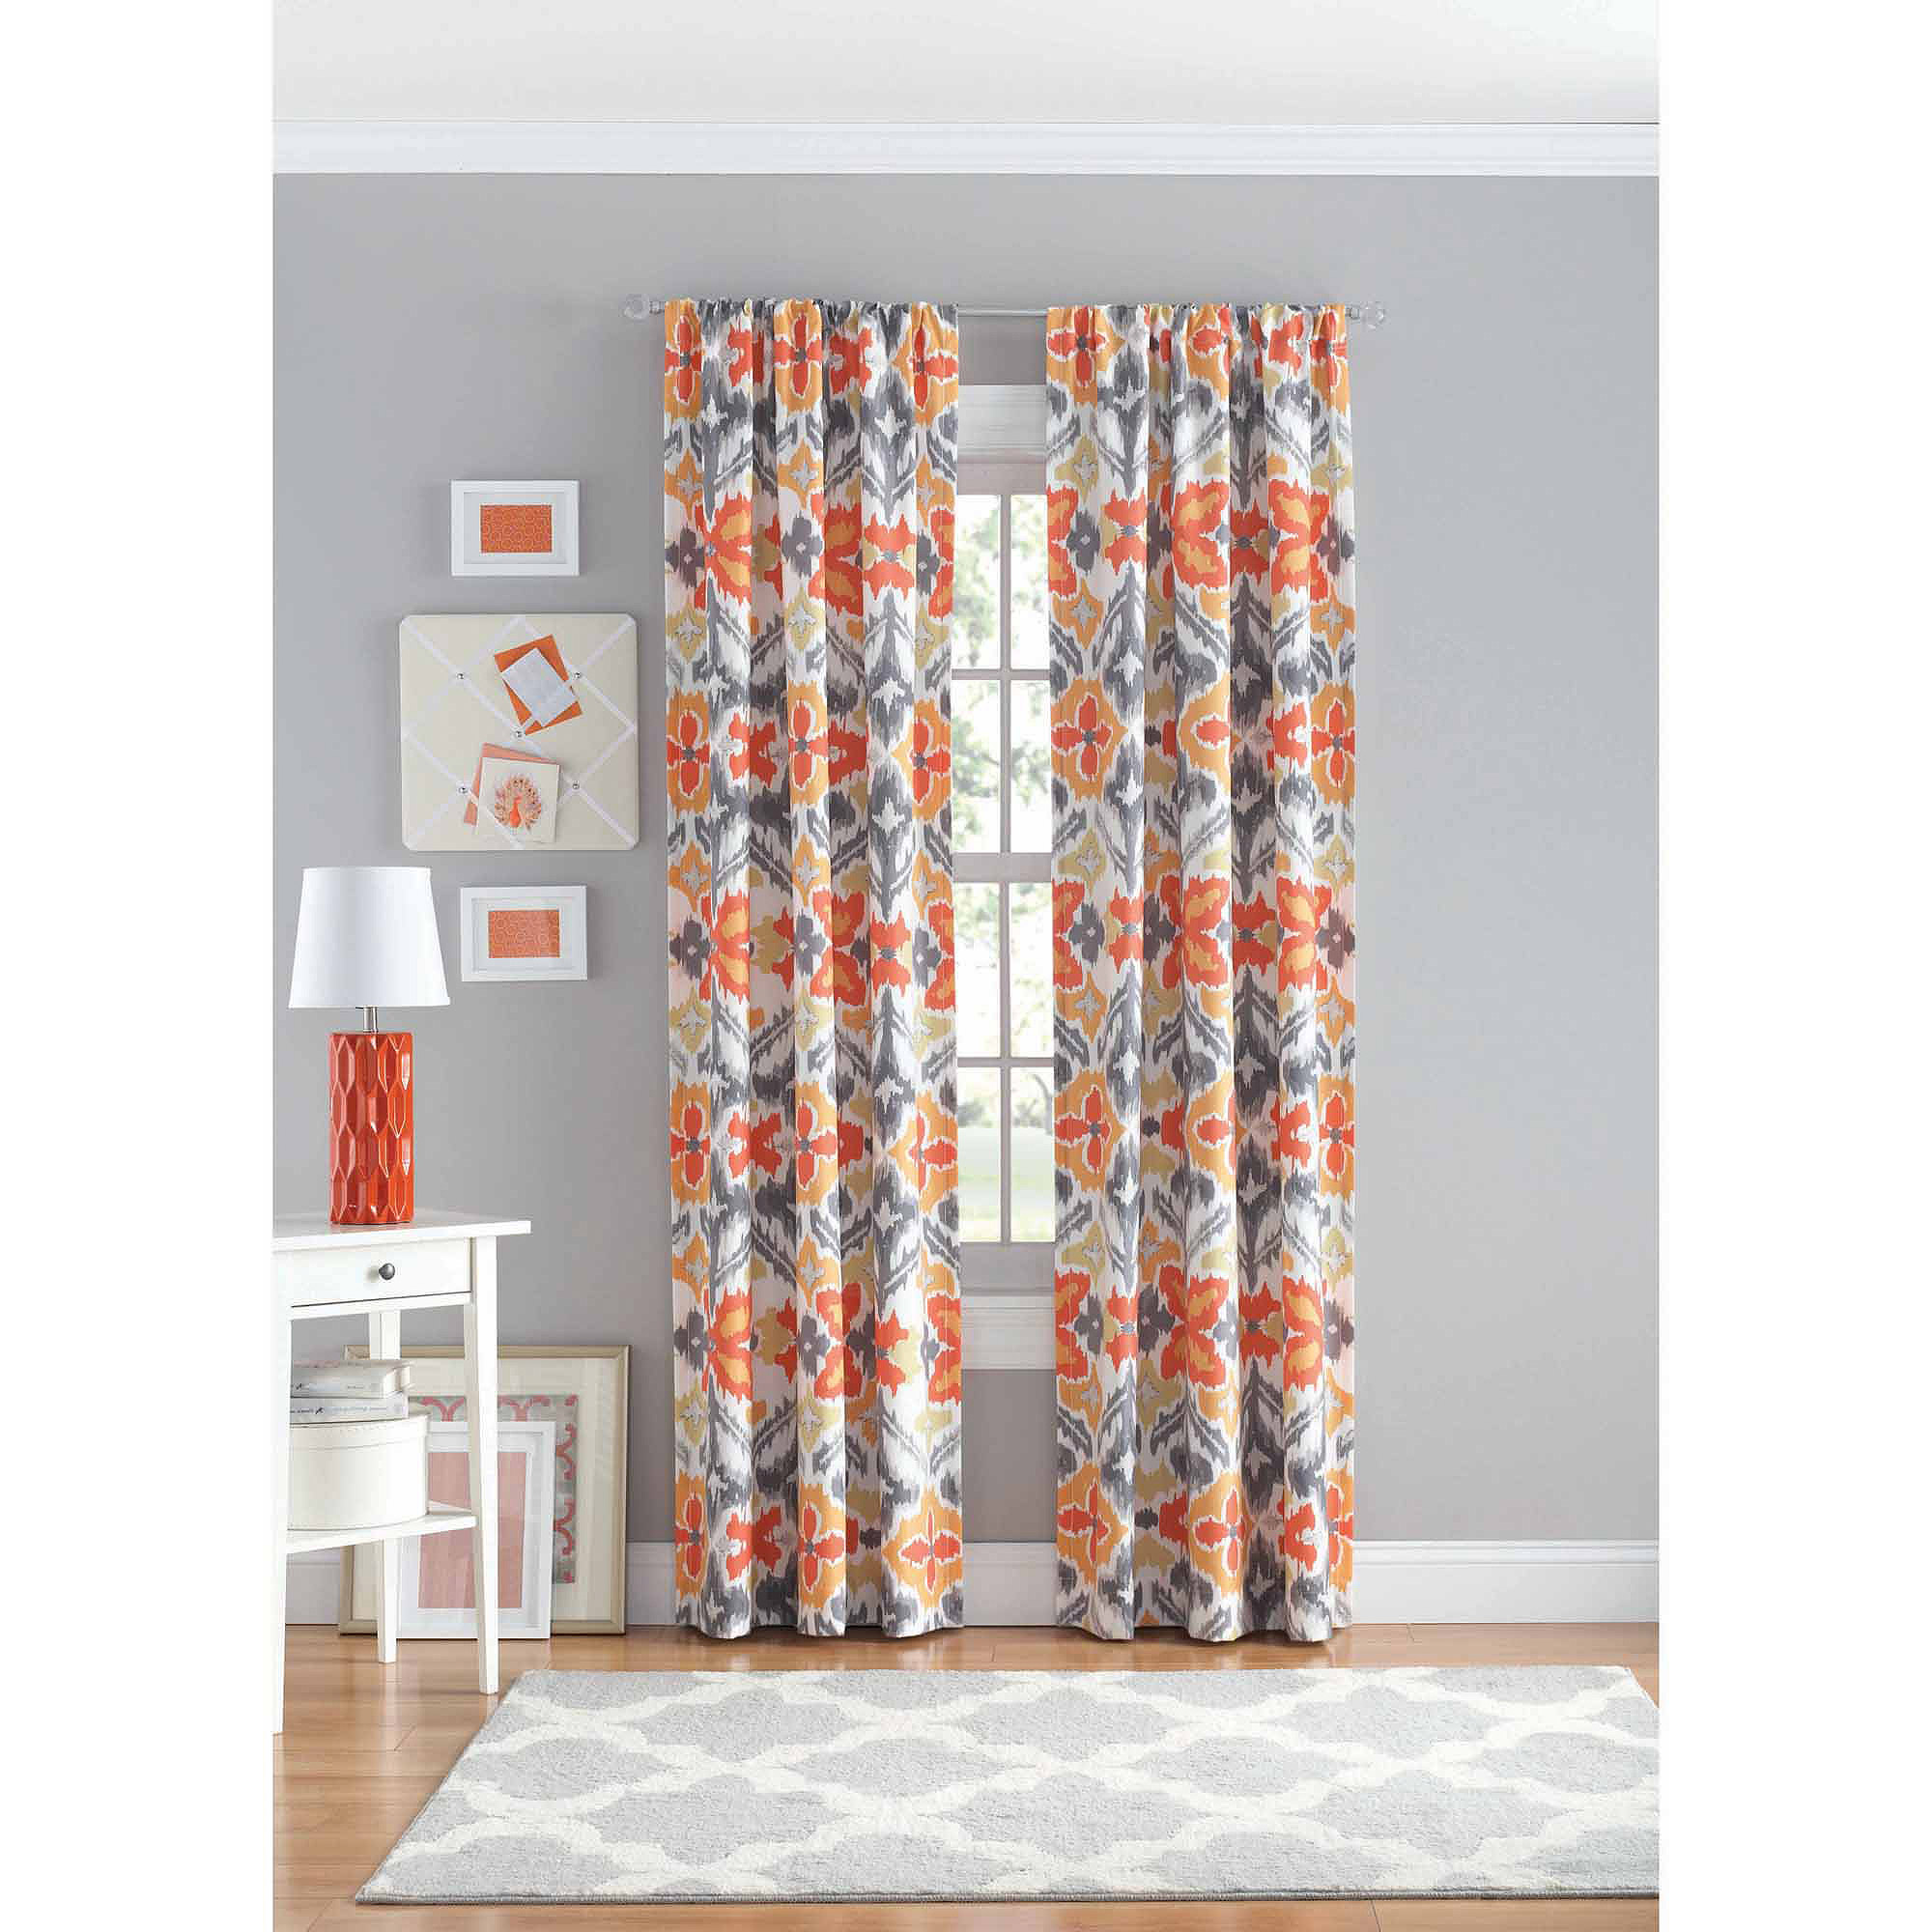 size u curtain window online silk drapes at and shop of curtains find for full shipping items on orange target free targetcom treatments imports panels available pier jcpenneycom